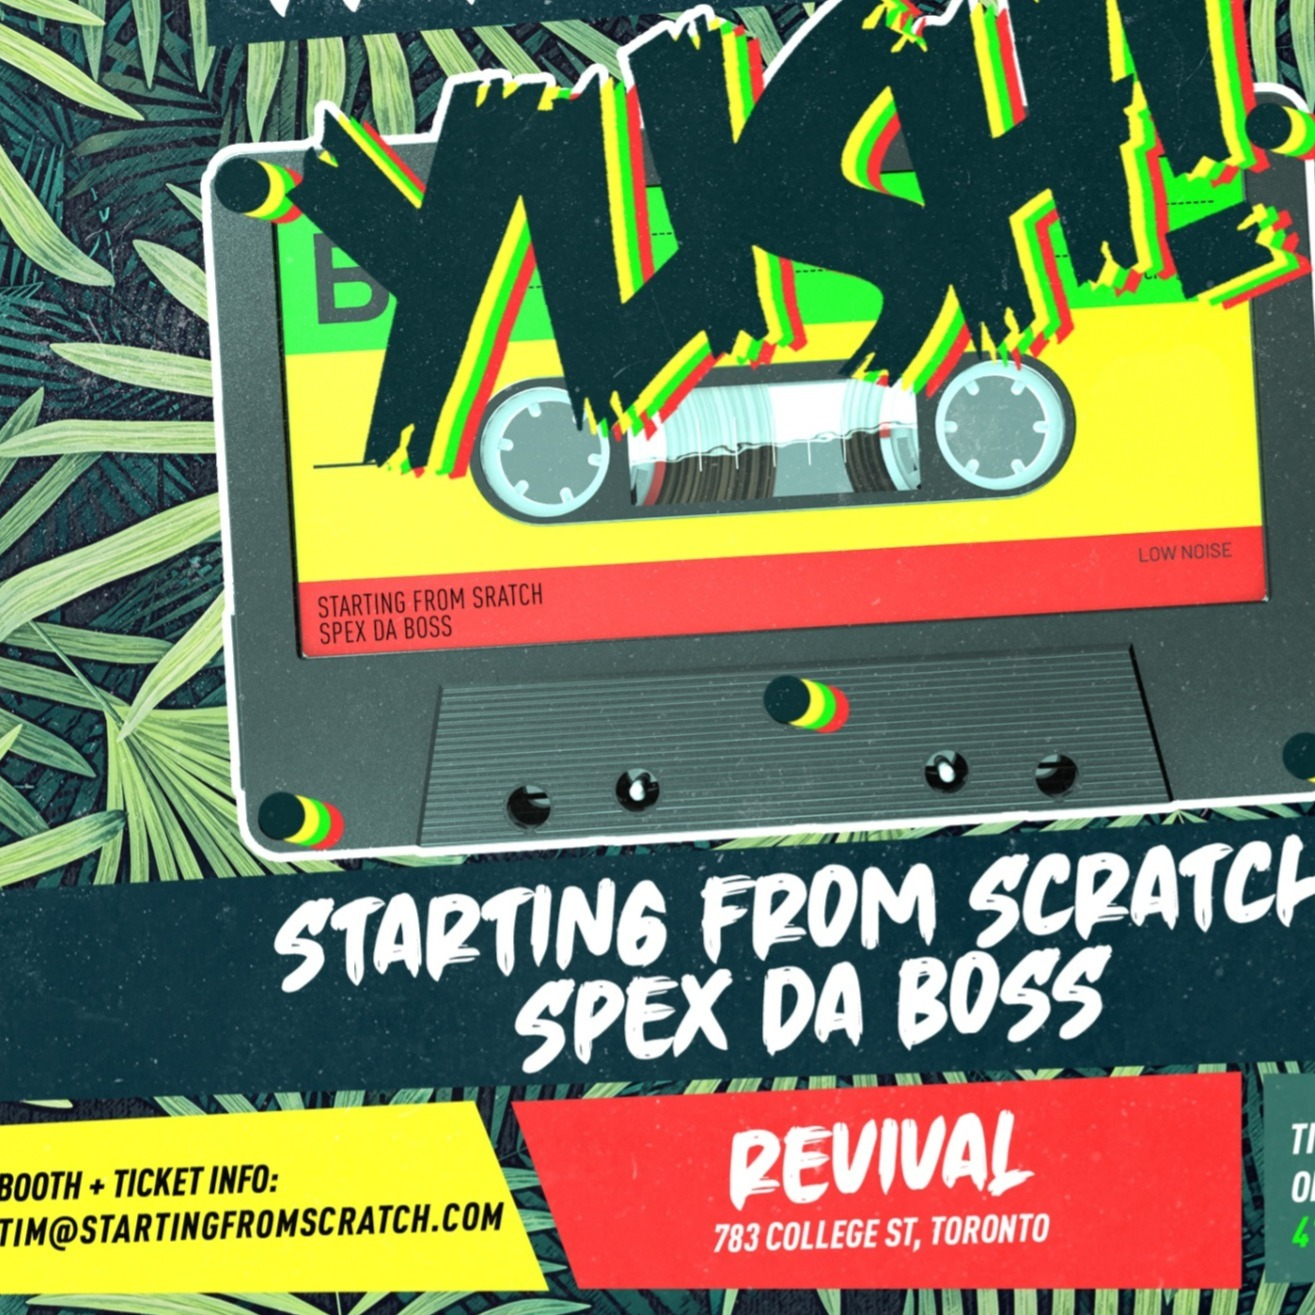 YUSH! - A JOURNEY THROUGH REGGAE MUSIC ~ FRIDAY JUNE 5th